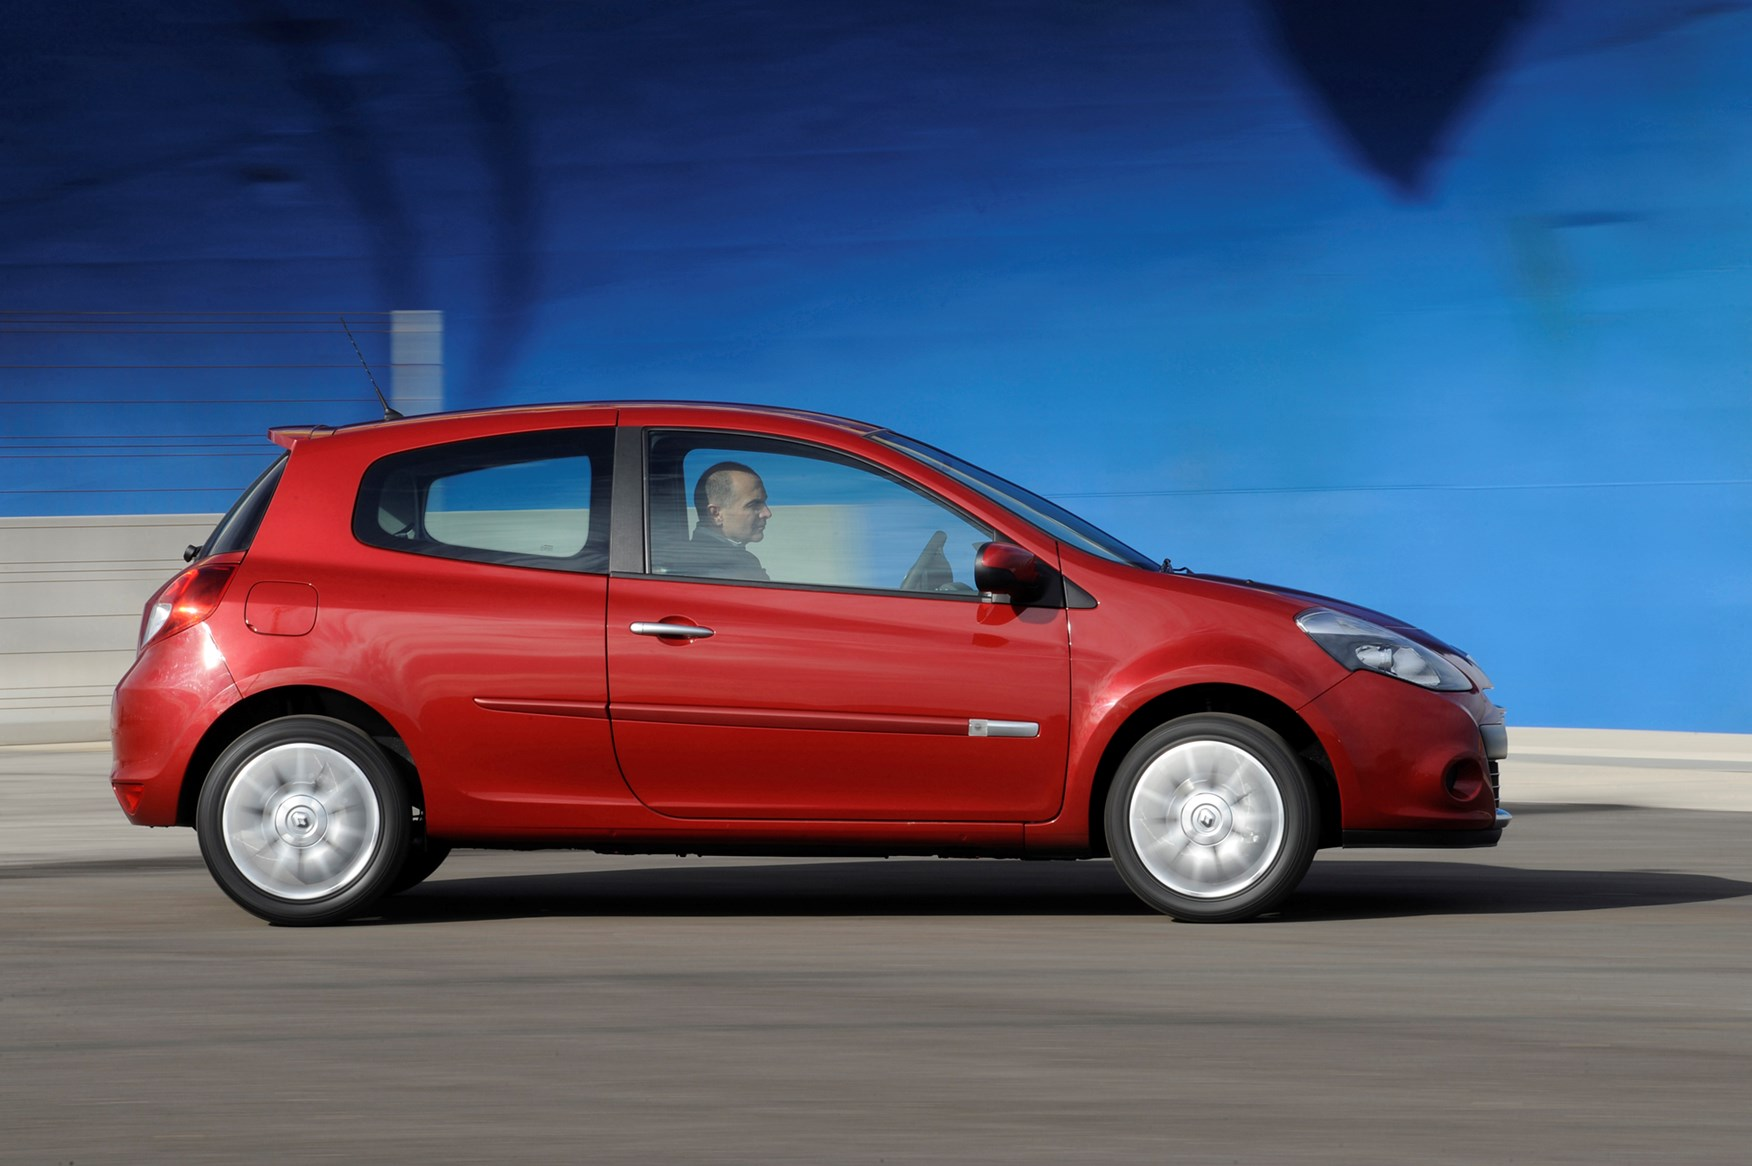 Used Renault Clio Hatchback 2005 2012 Practicality Parkers